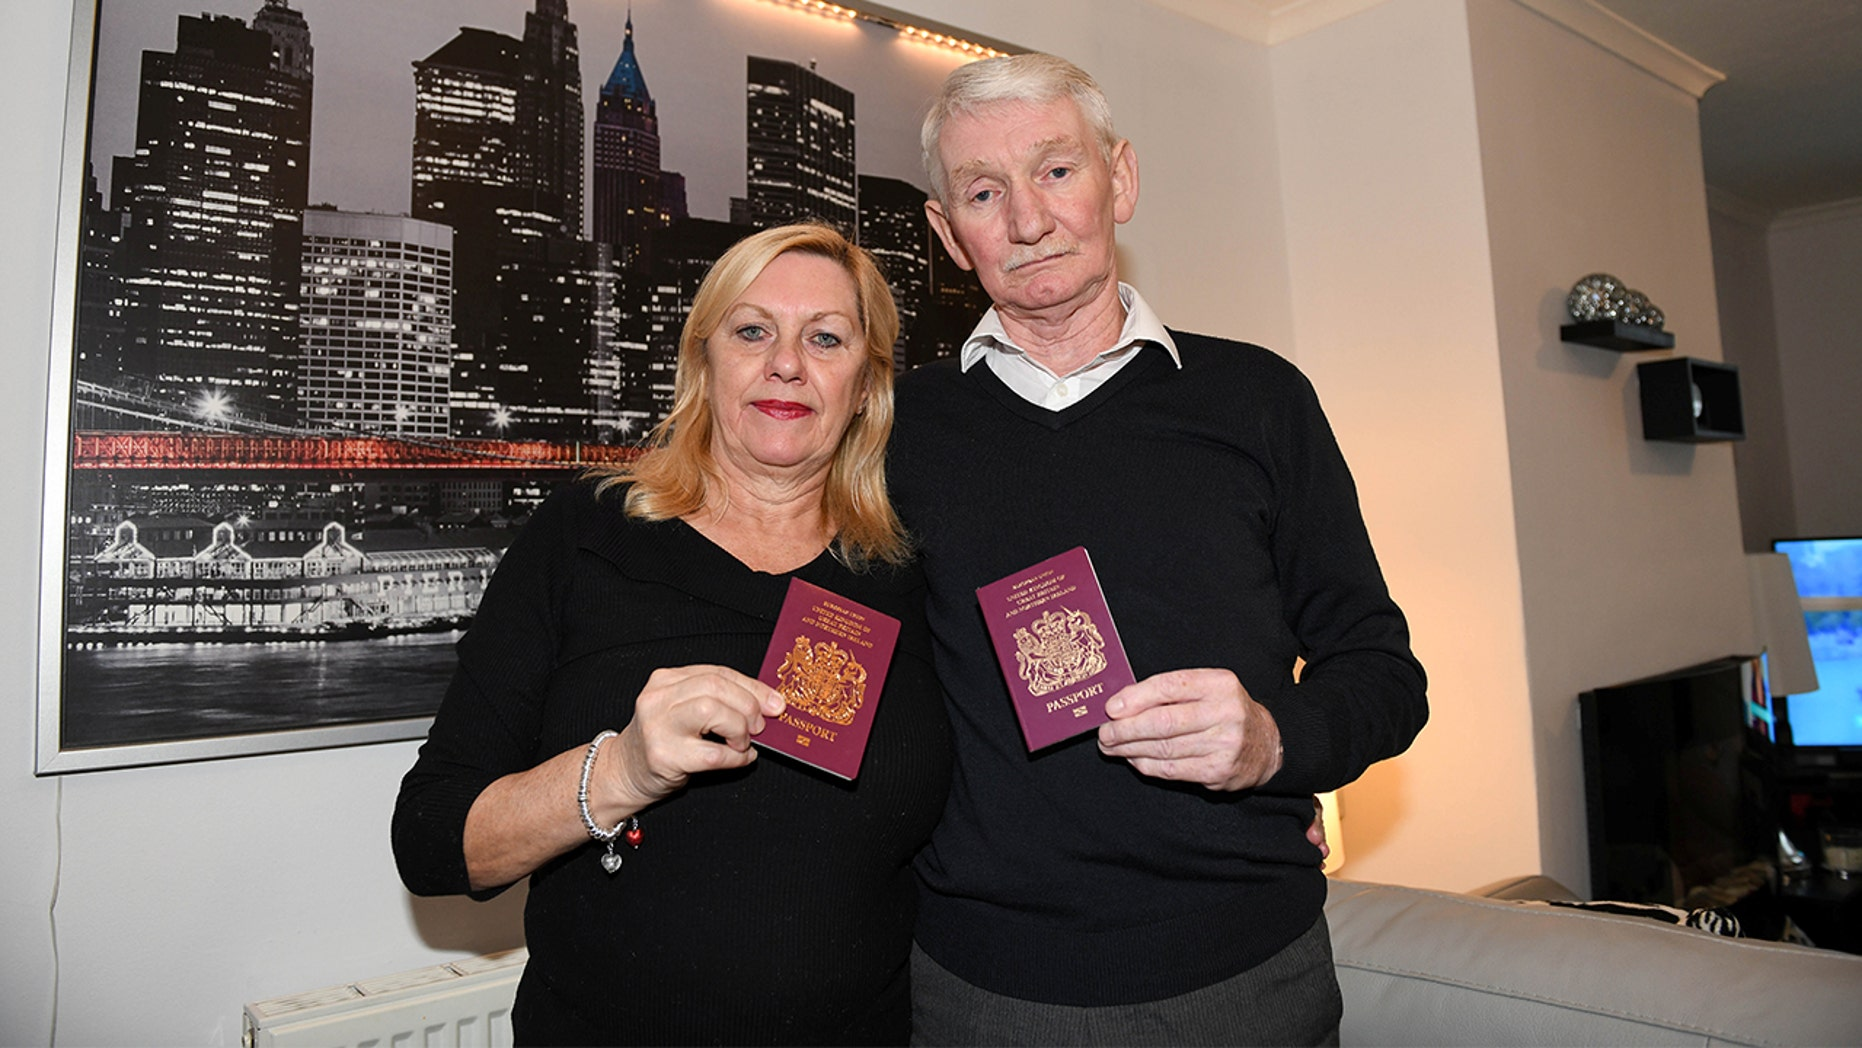 A couple from Scotland might have to cancel their NYC vacation because the husband accidentally labeled himself a terrorist on his visa form.